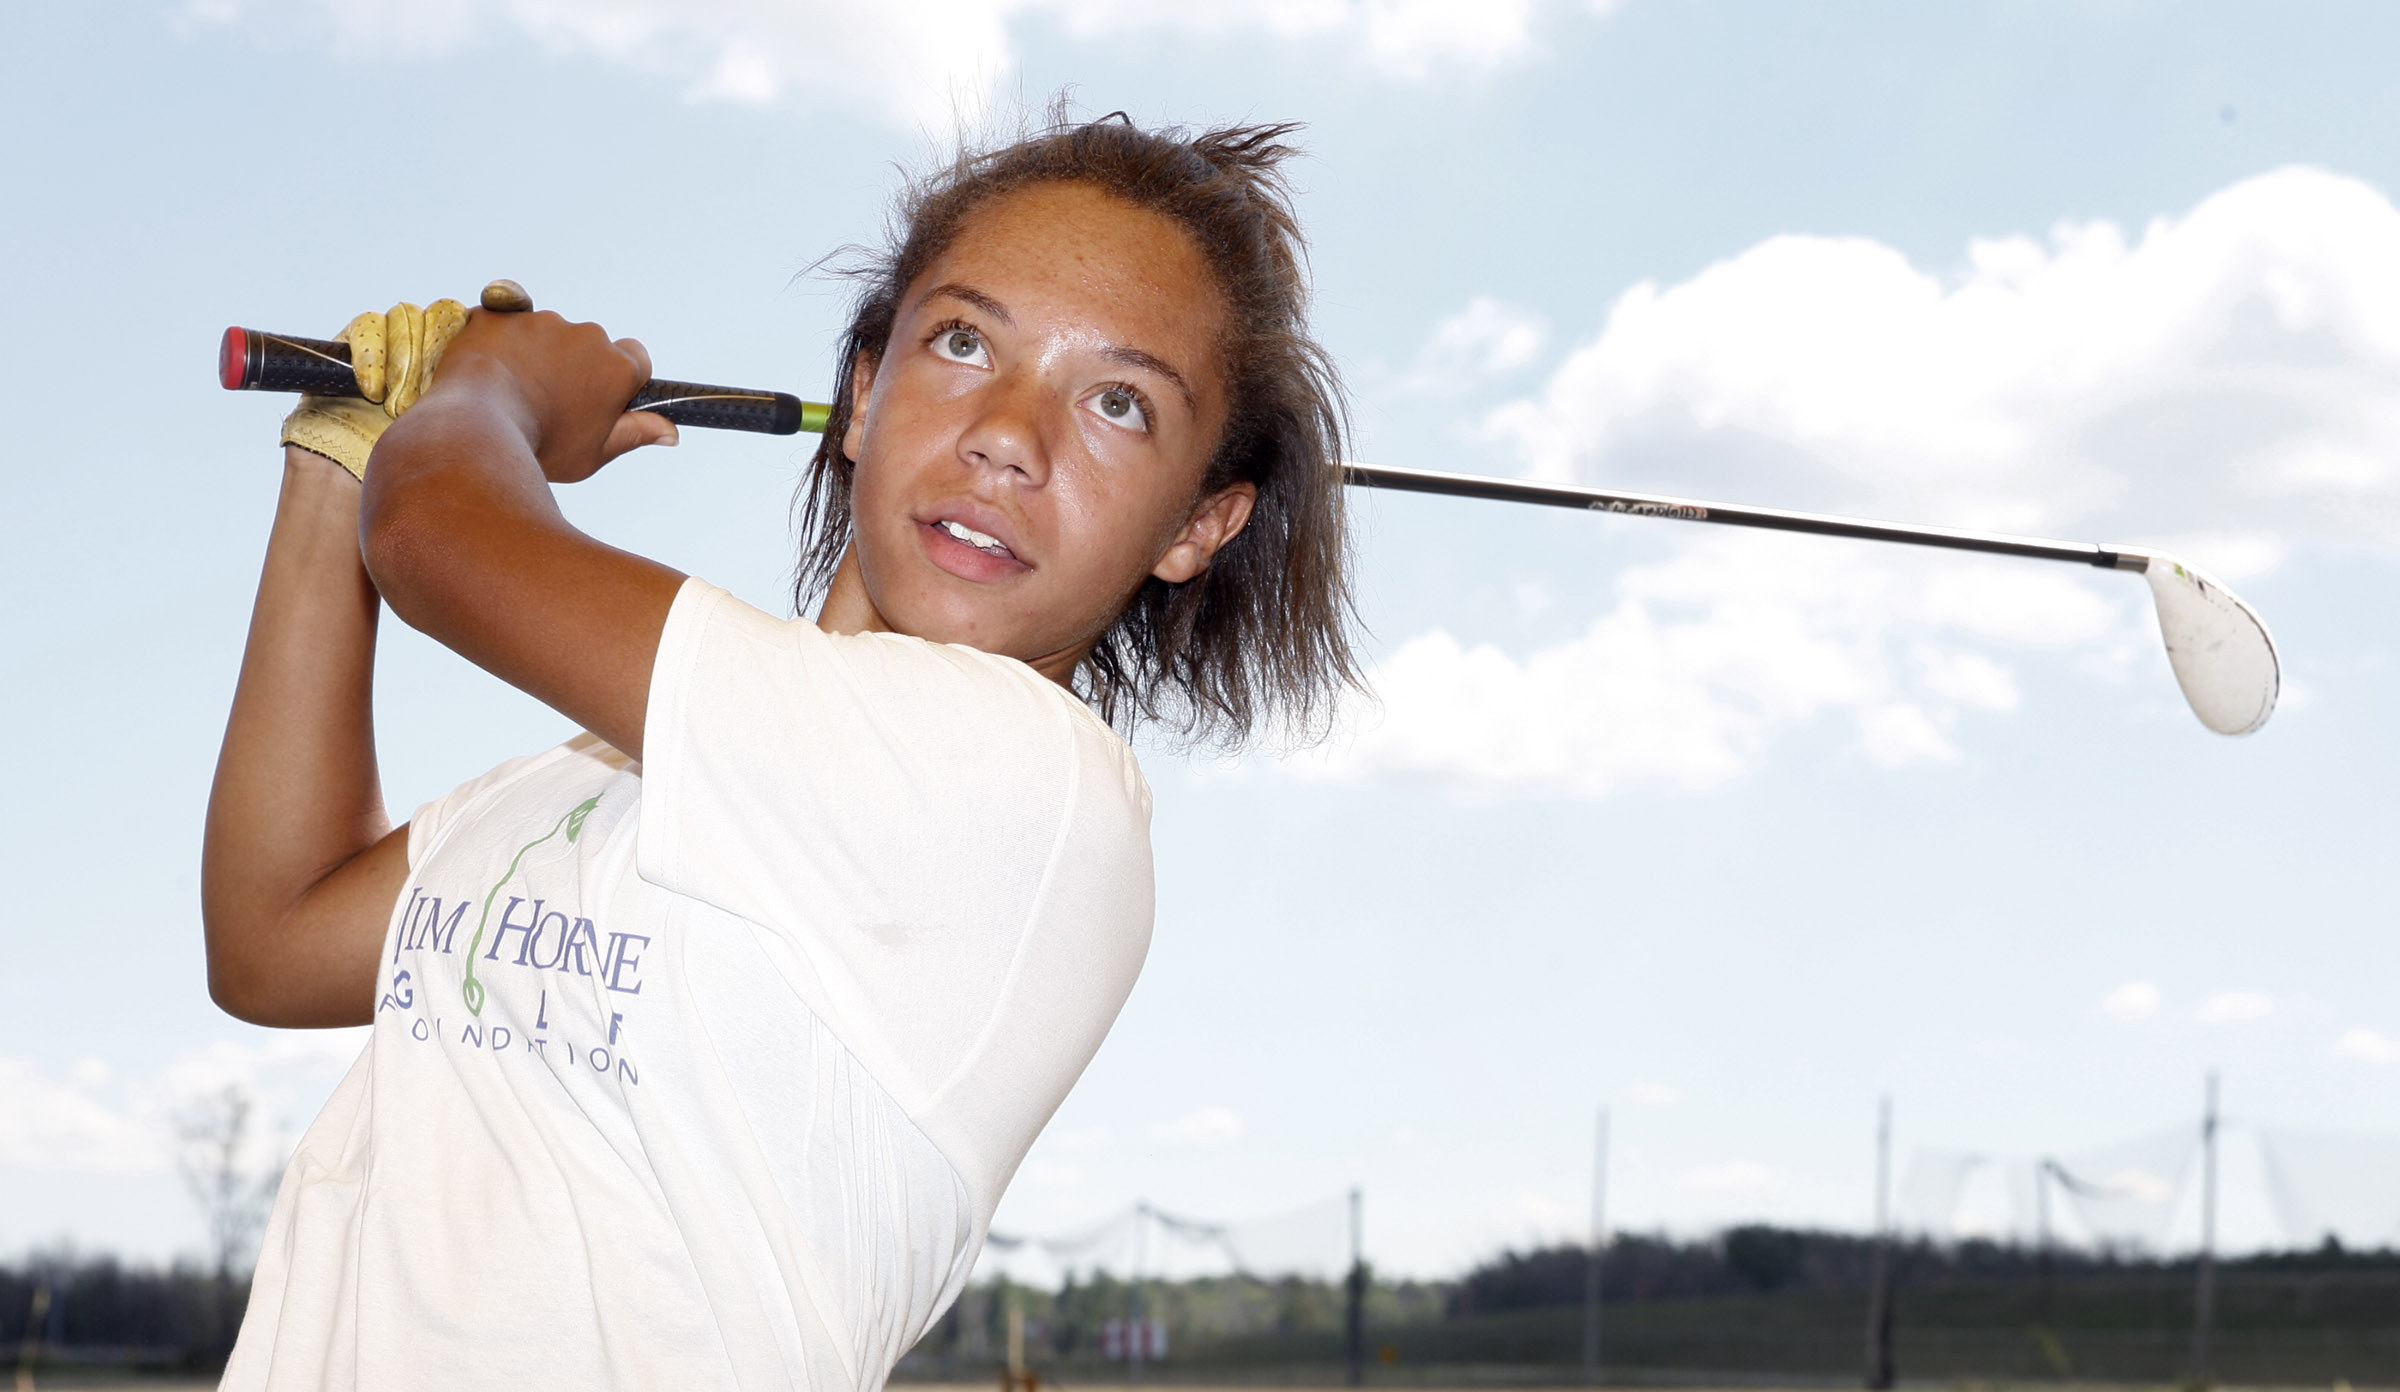 Marisa Warren works on her golf game at the Jim Horne golf camp at the Airport driving range on Wednesday, Aug. 3, 2016. (Harry Scull Jr./Buffalo News)